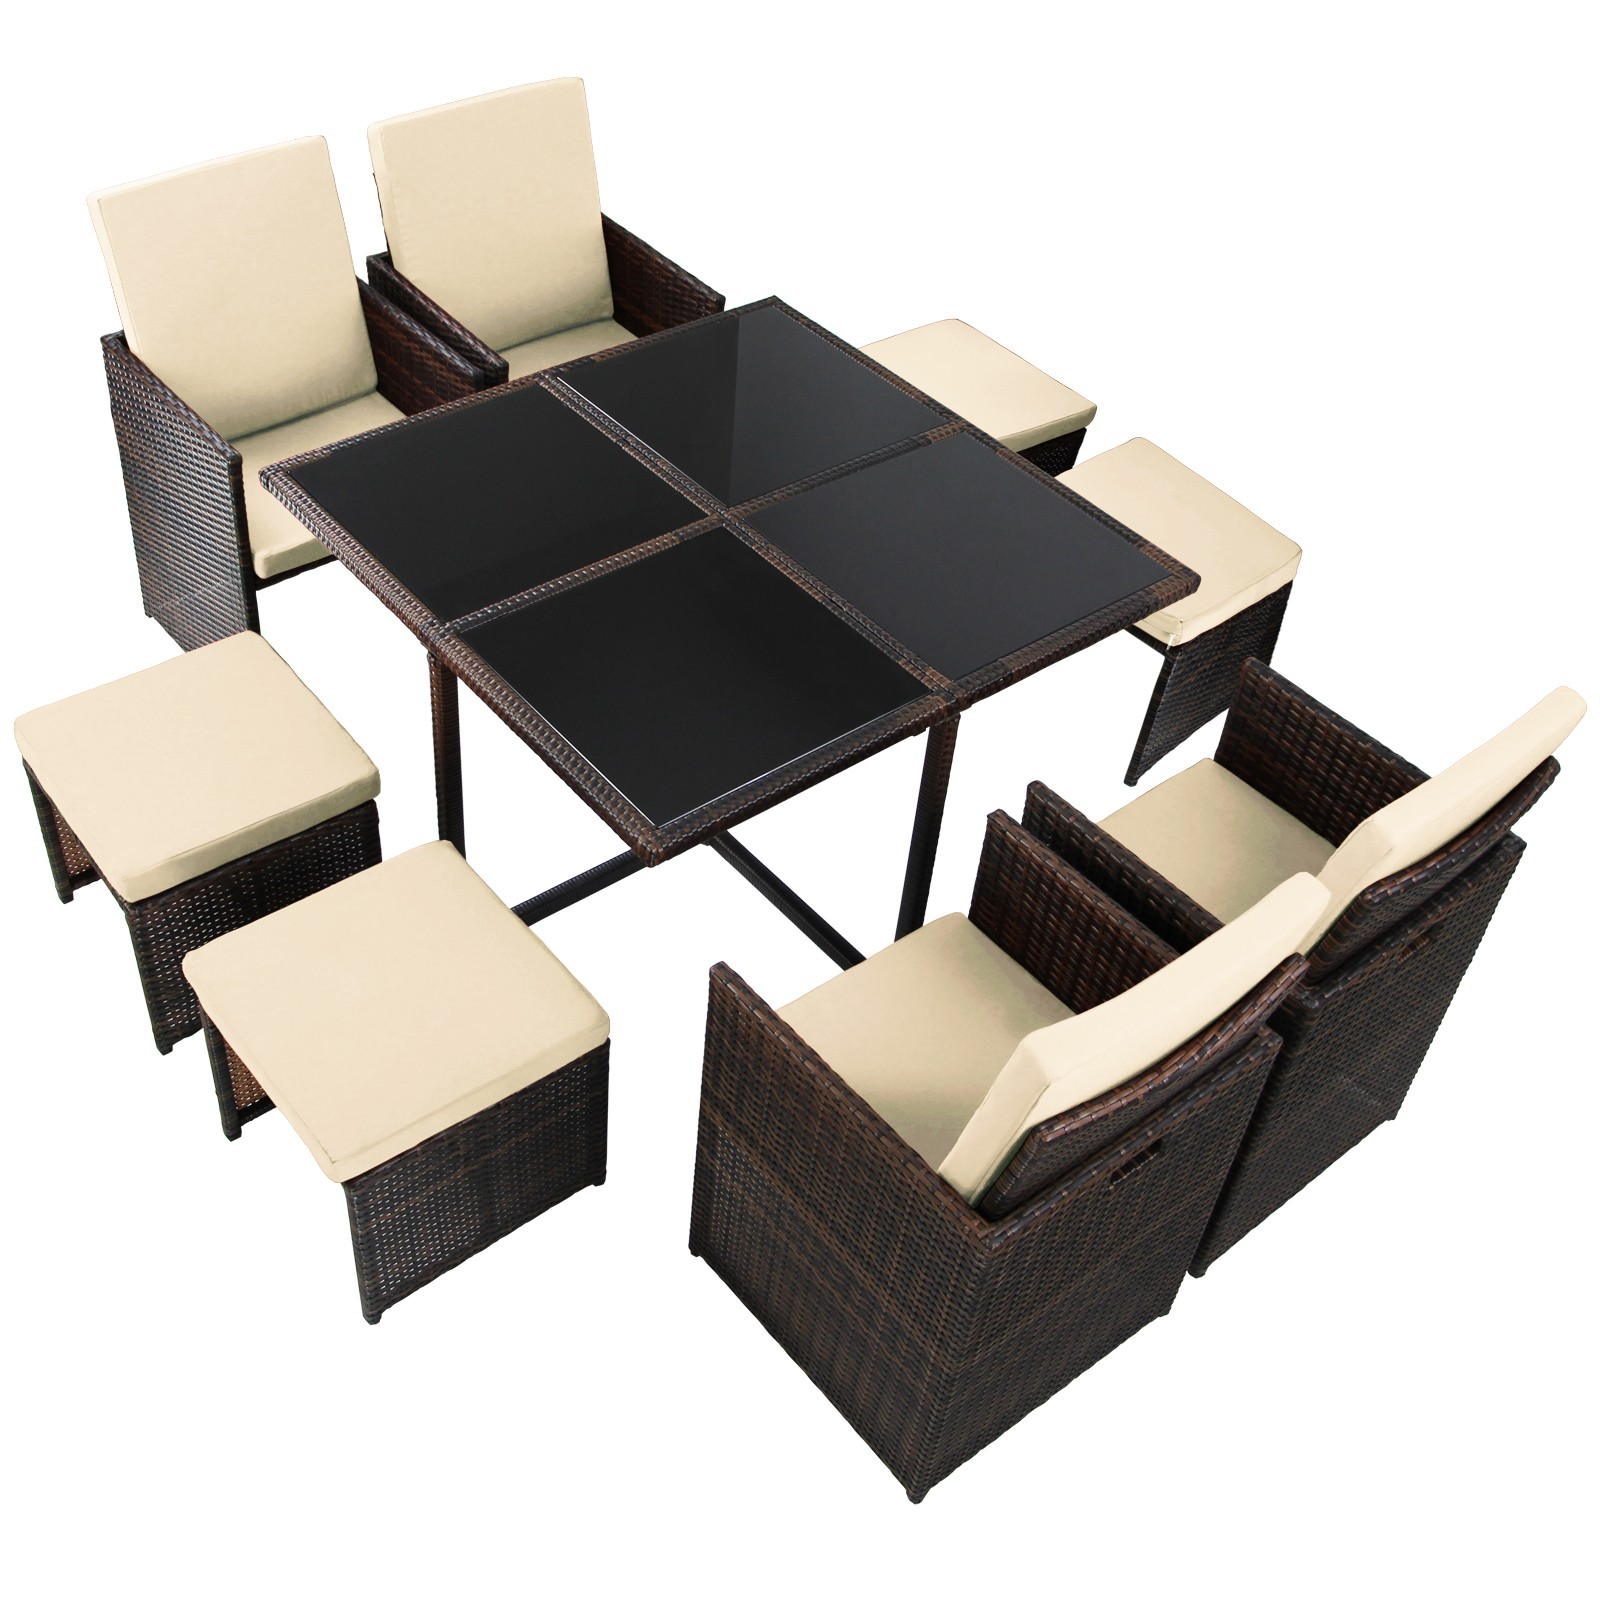 17 teilige polyrattan rattan sitzgruppe essgruppe gartenm bel terassenm bel cube ebay. Black Bedroom Furniture Sets. Home Design Ideas